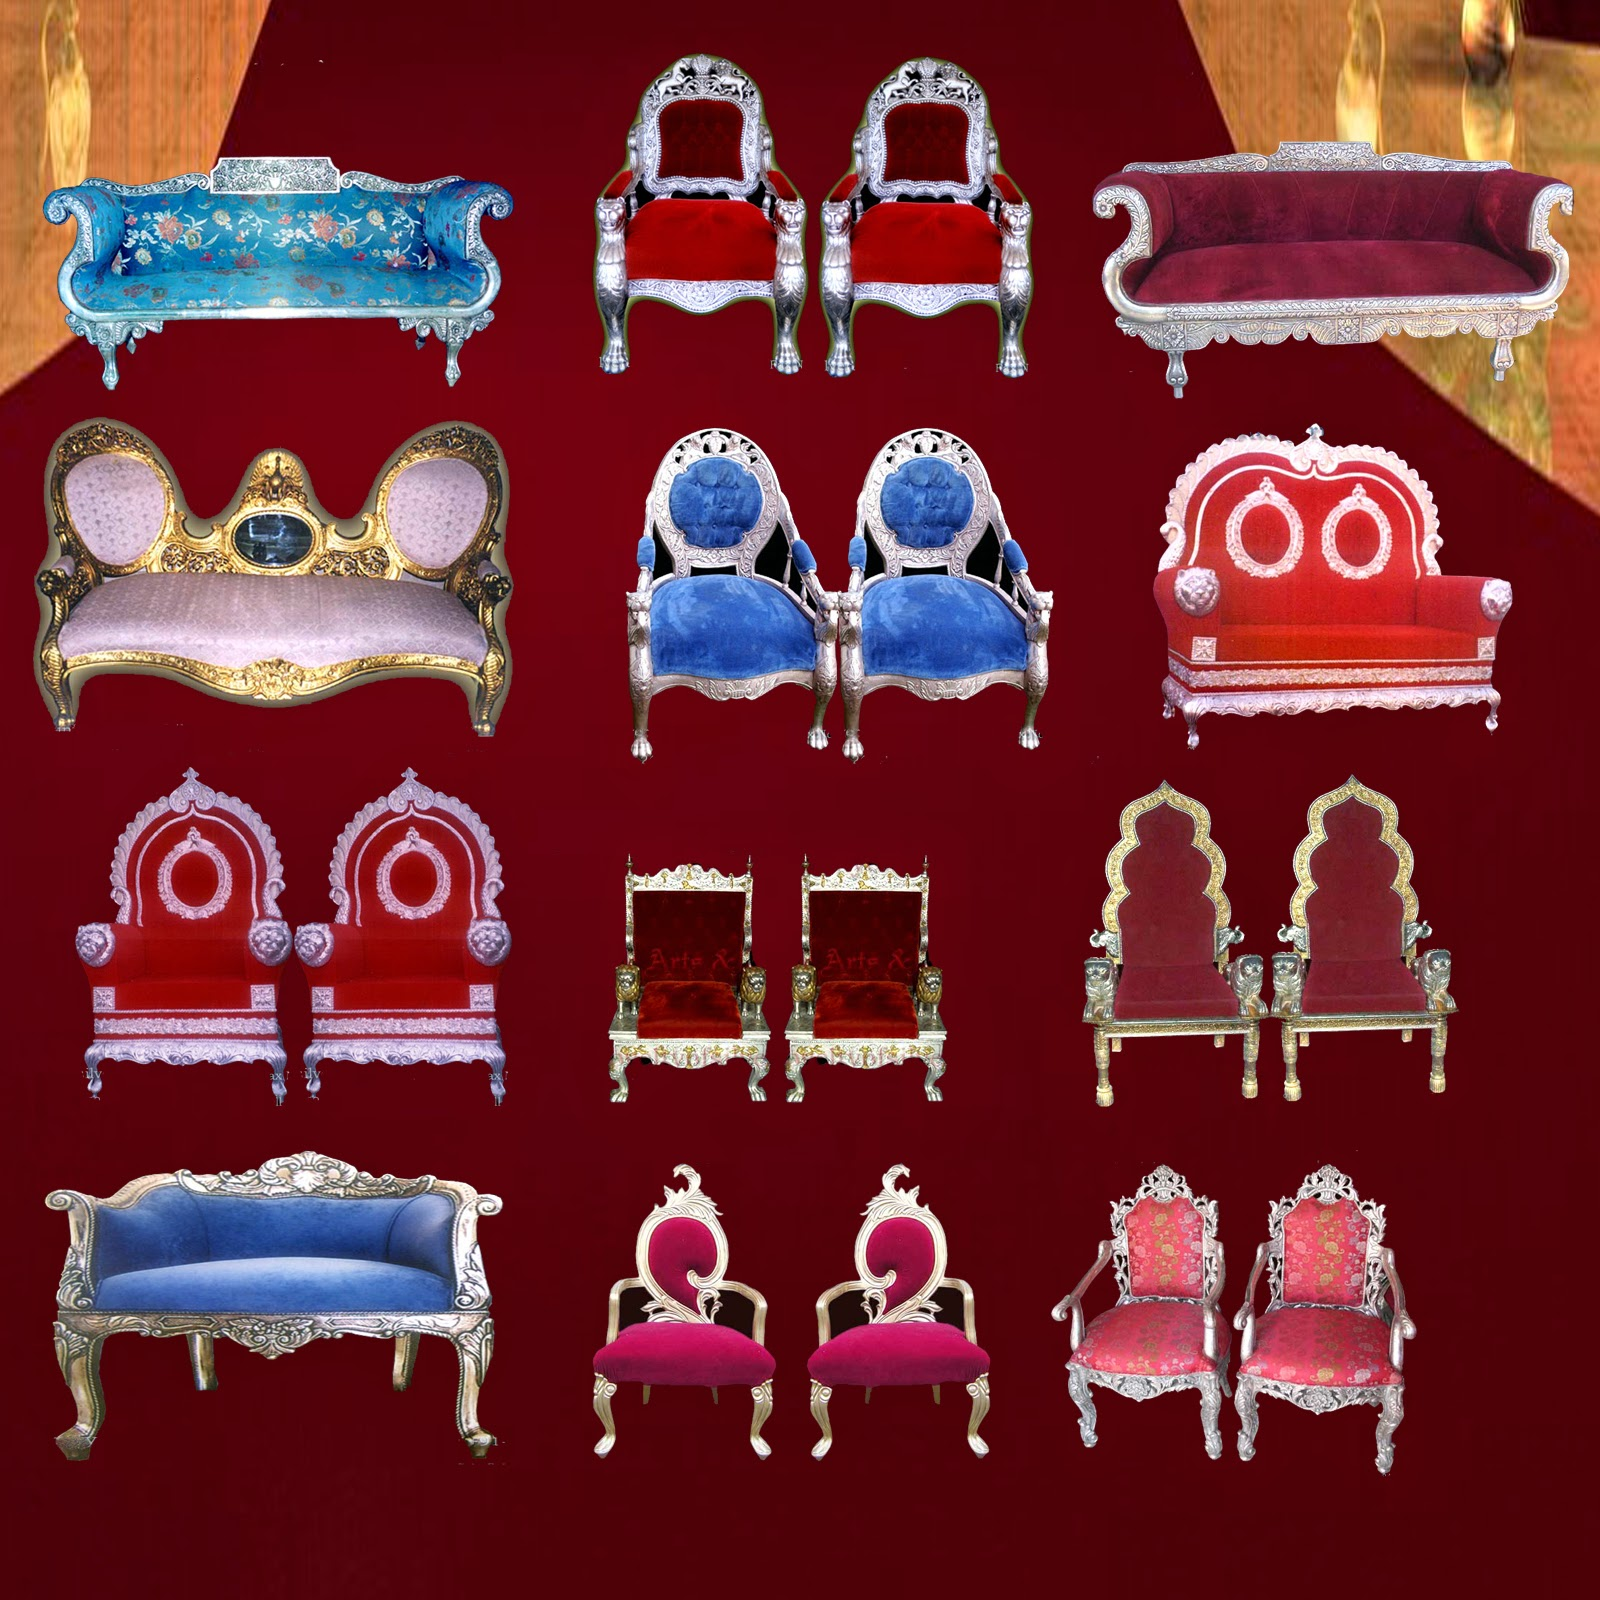 wedding sofa & chairs psd Files for Adobe shop Download